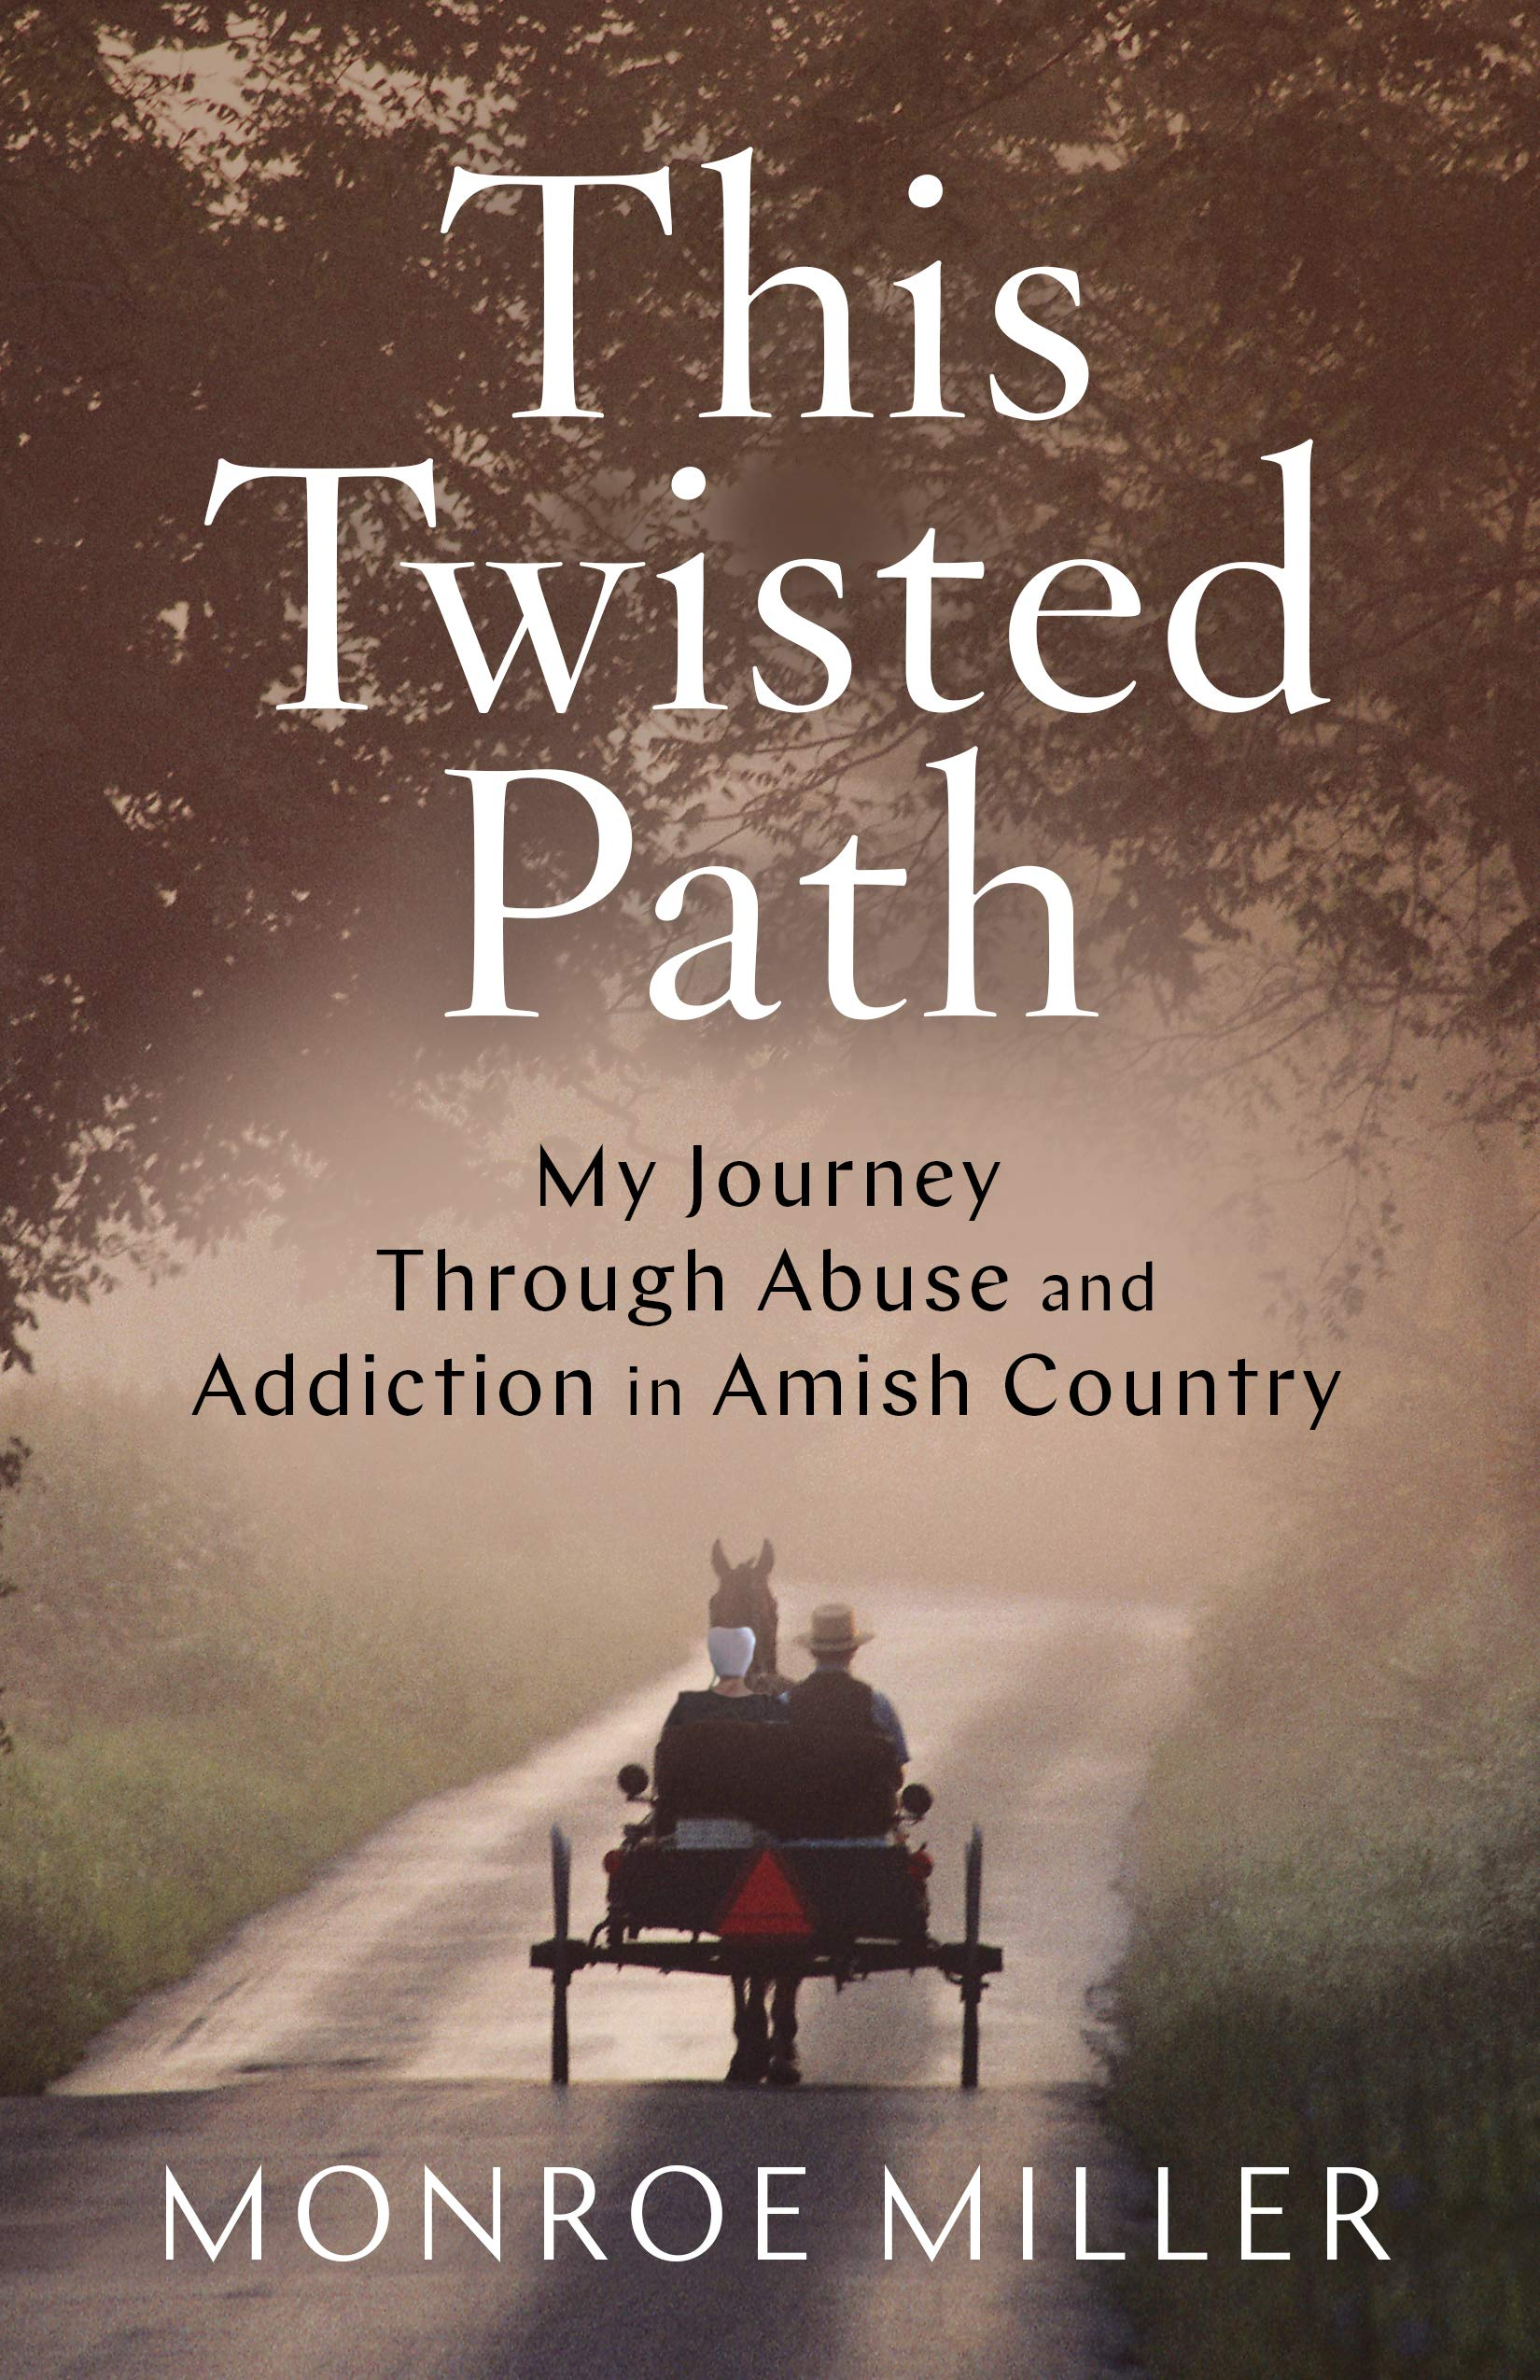 This Twisted Path: My Journey through Abuse and Addiction in Amish Country